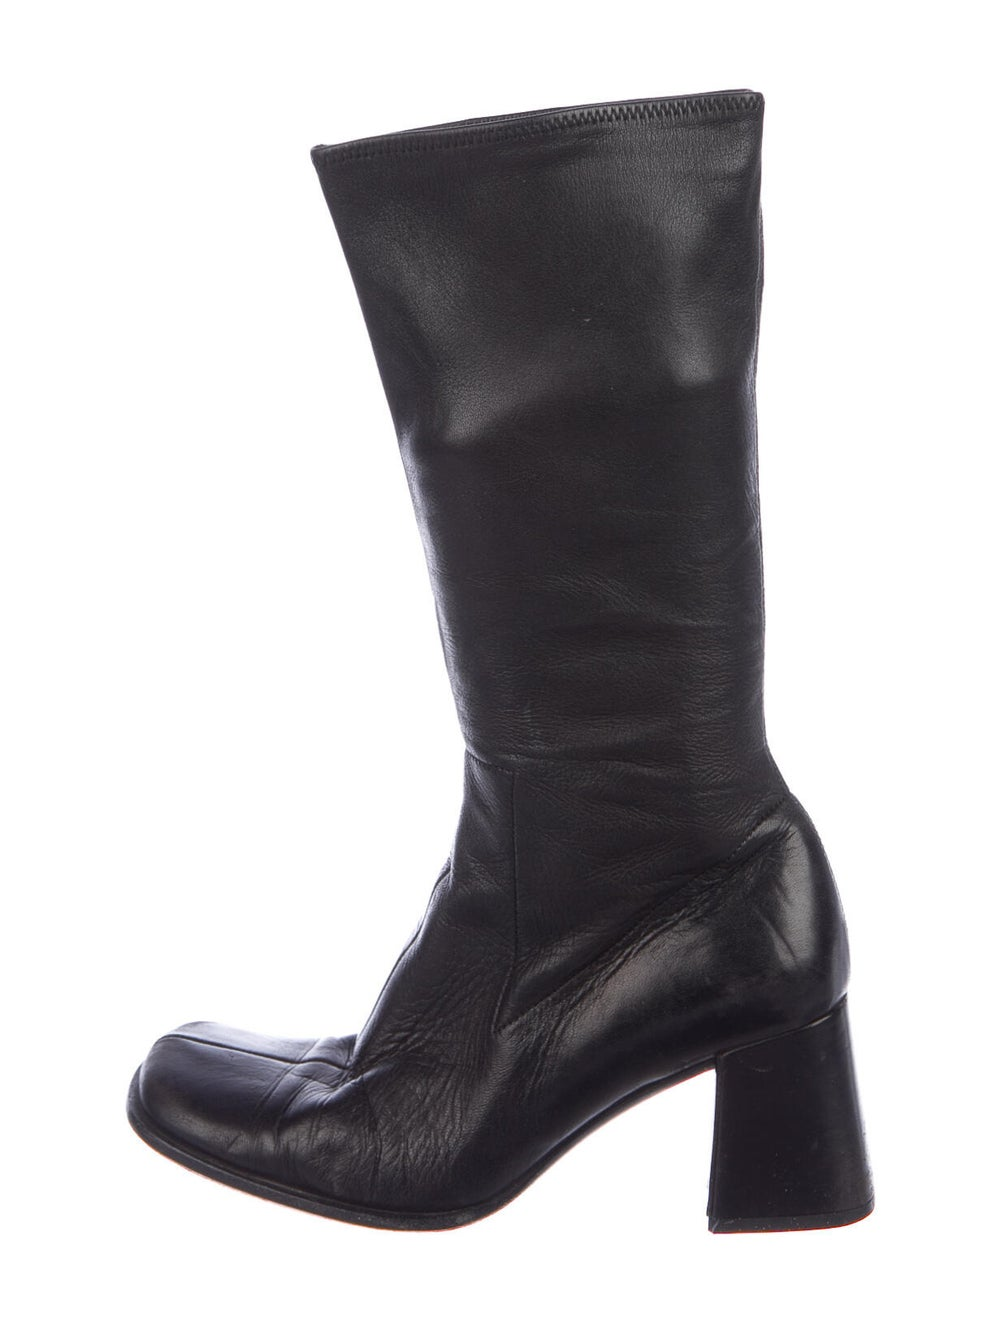 Prada Leather Boots Black - image 1